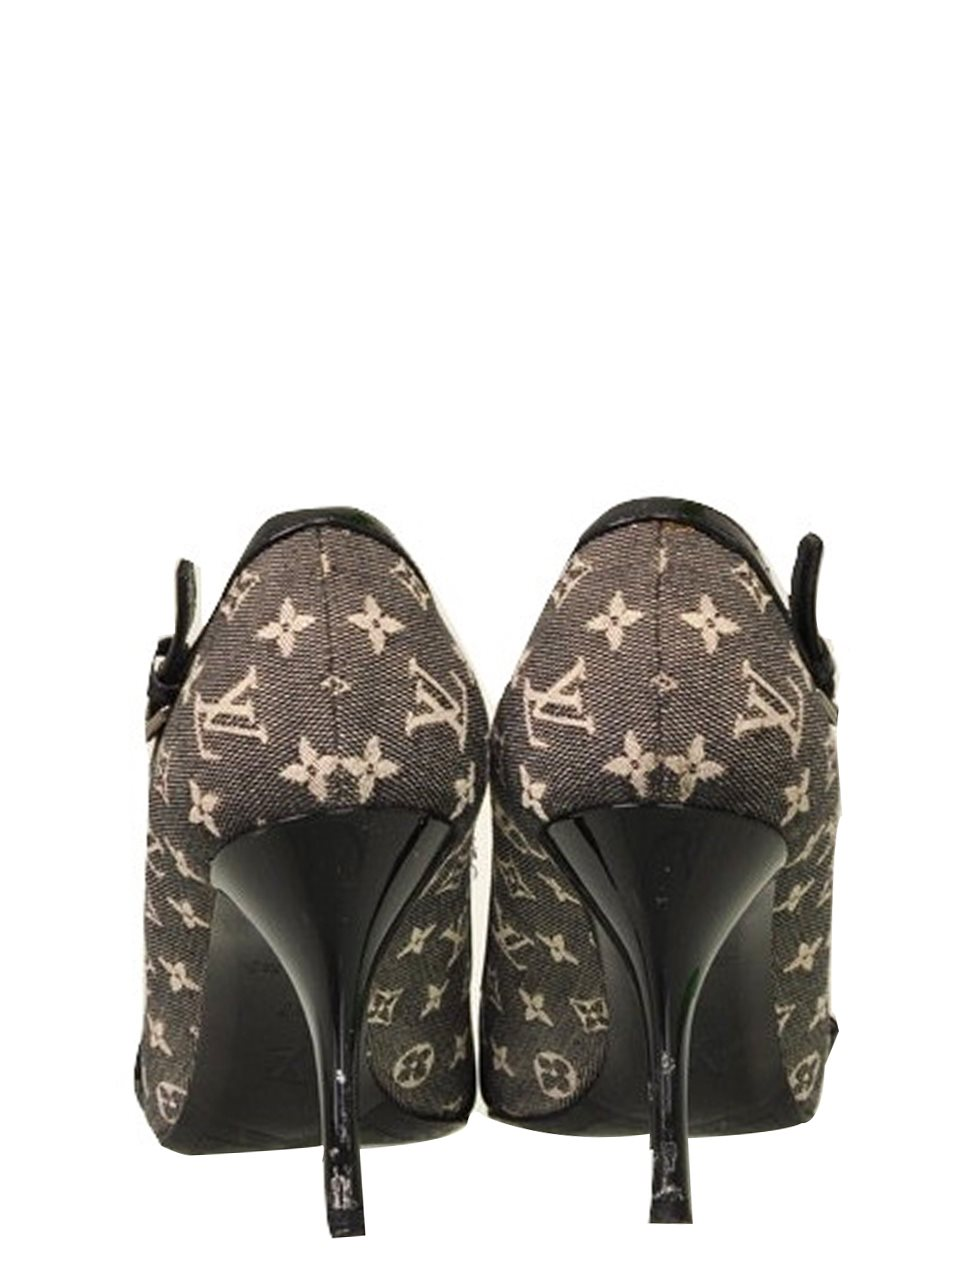 Louis Vuitton - Mini Lin Monogram Canvas & Leather Pointy Heels - Image 4 of 5